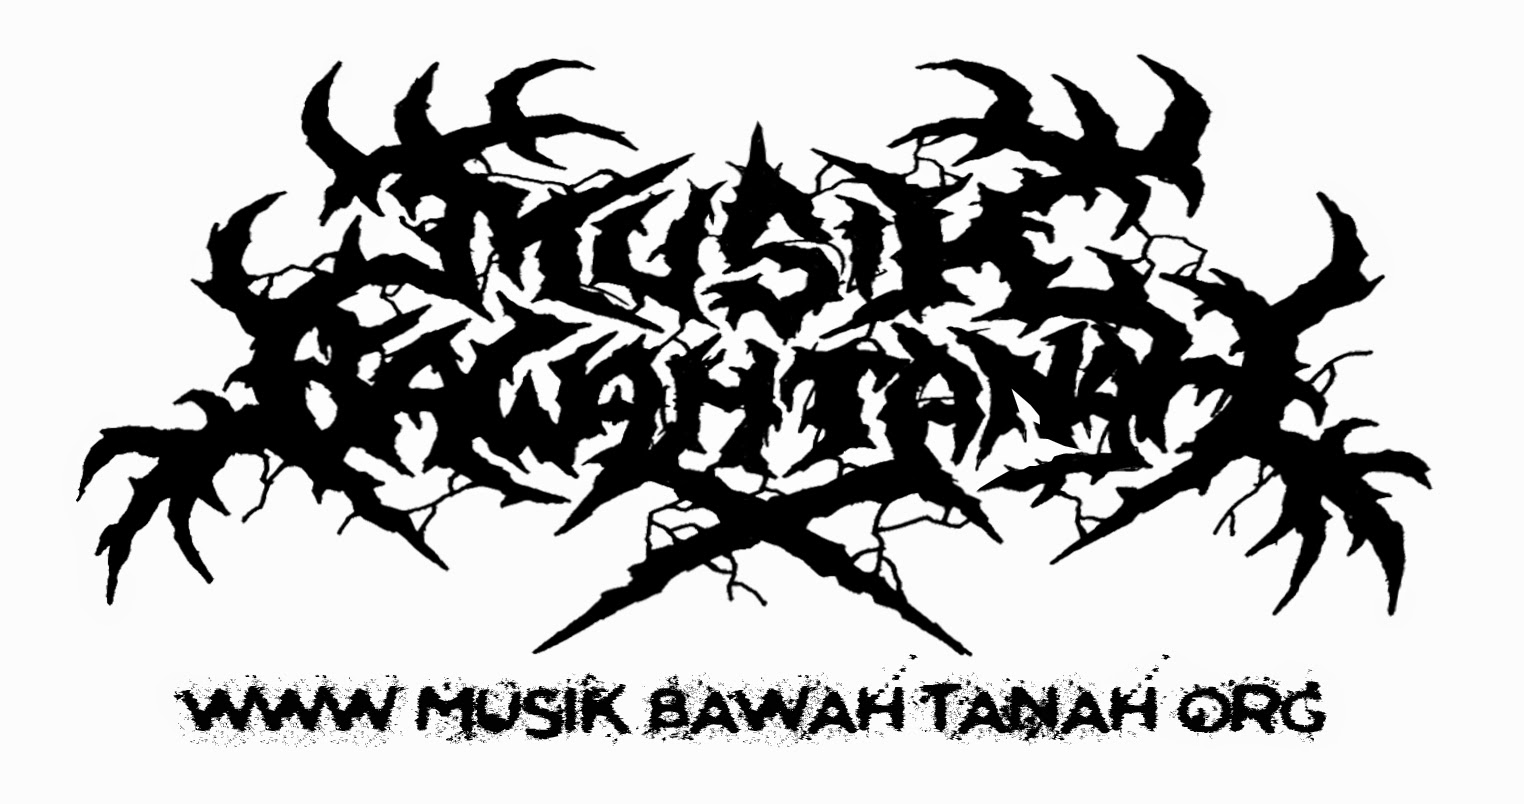 Musik Bawah Tanah | Black Metal | Grindcore | Screamo | Death Metal | Punk Rock | Hardcore | Metalcore | Gothic Metal | Deathcore | Artwork 3